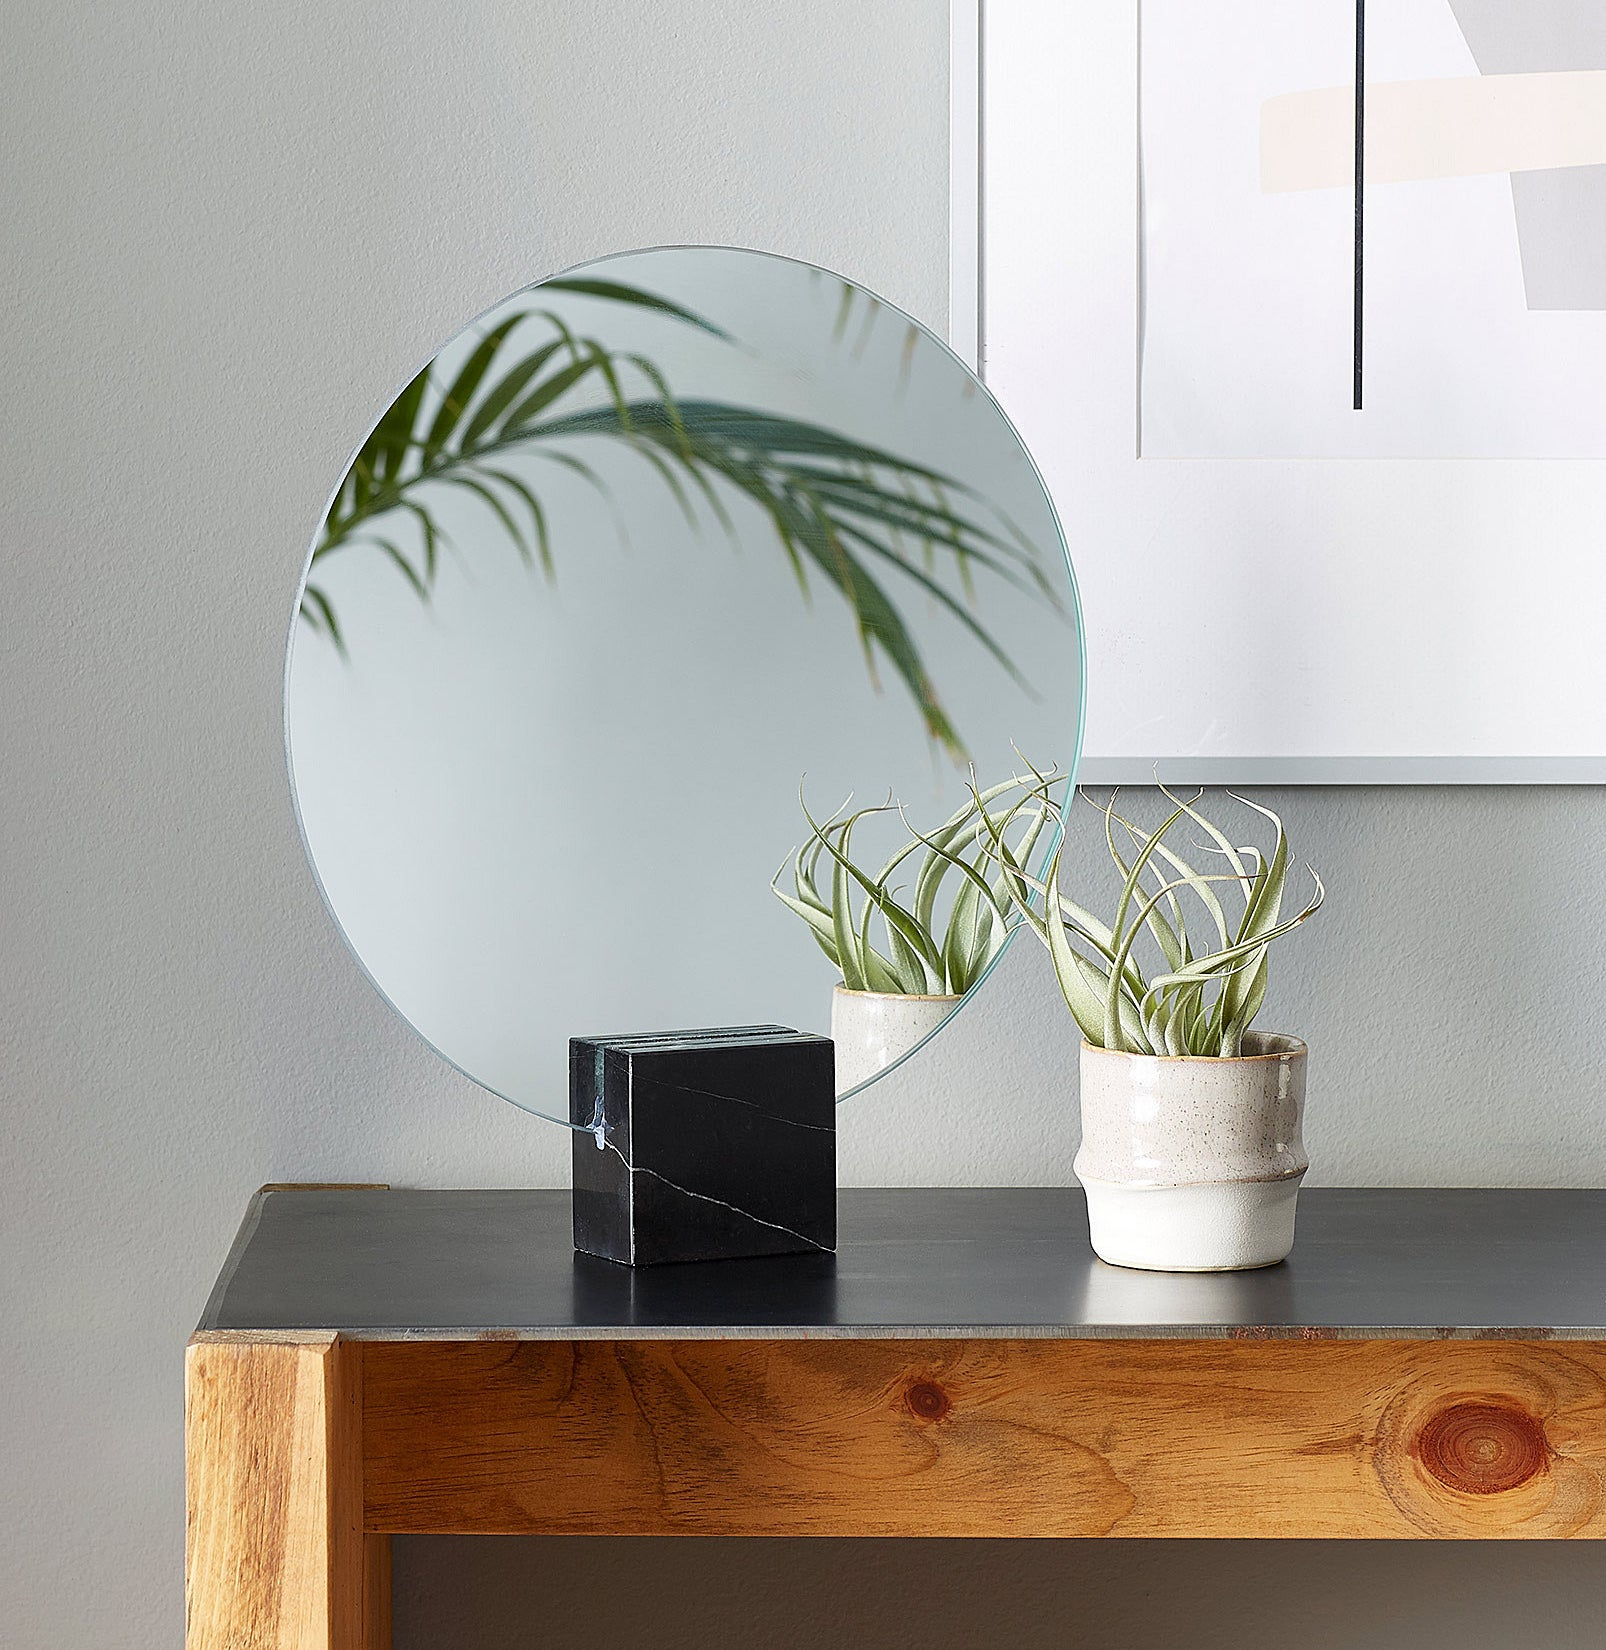 A round mirror sitting in a marble cube next to a small plant